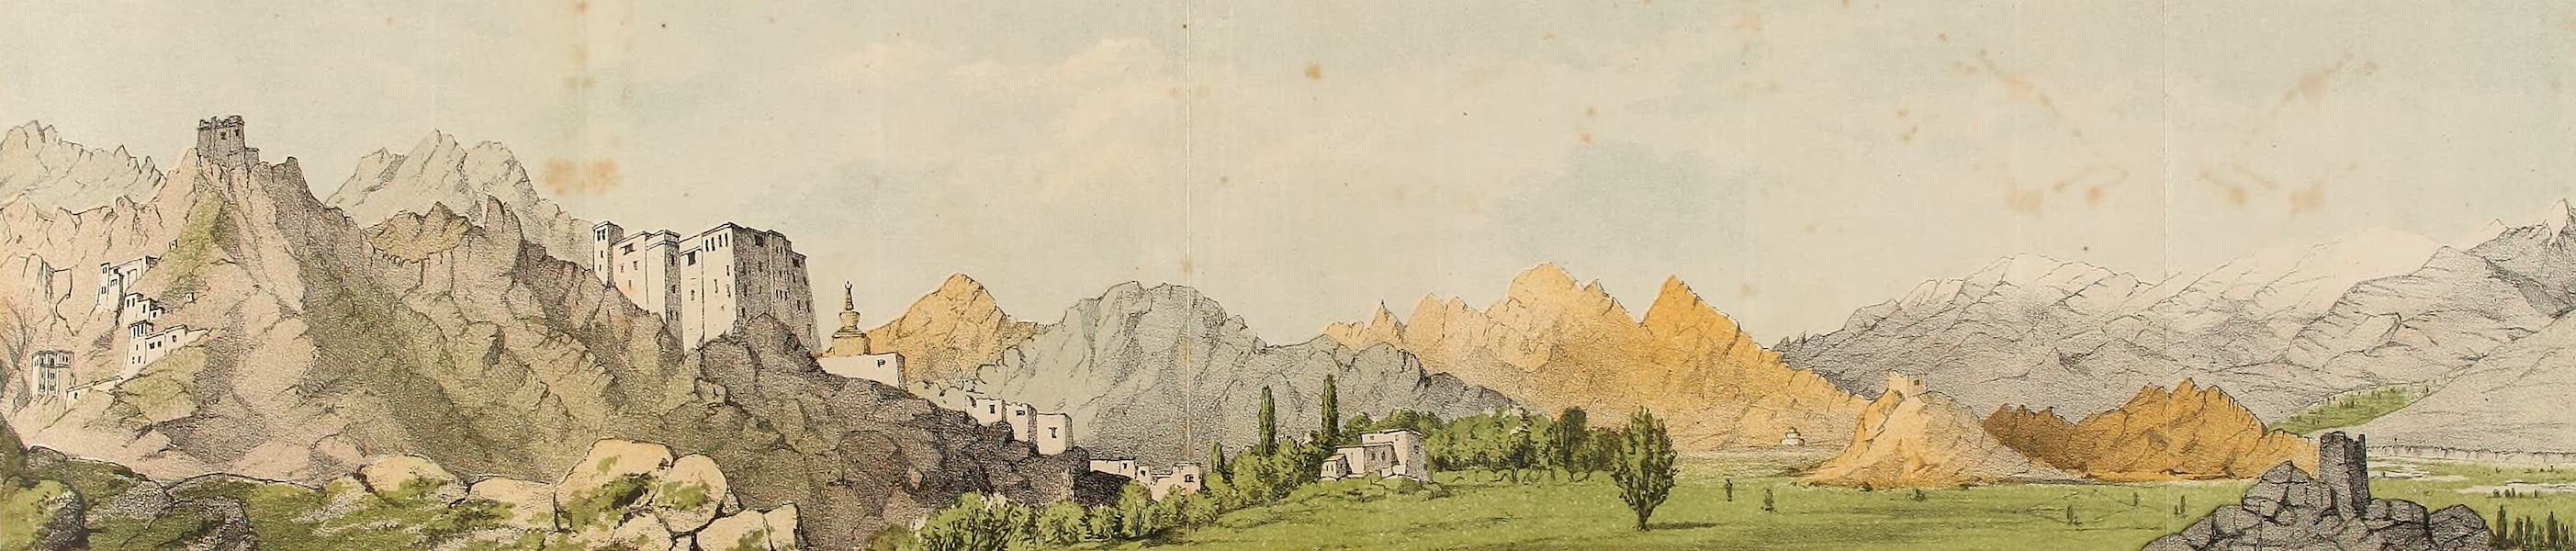 Travels in Ladak, Tartary, and Kashmir - A Panorama of Le from the Palace on the left to the Valley of the Indus on the right. (1862)